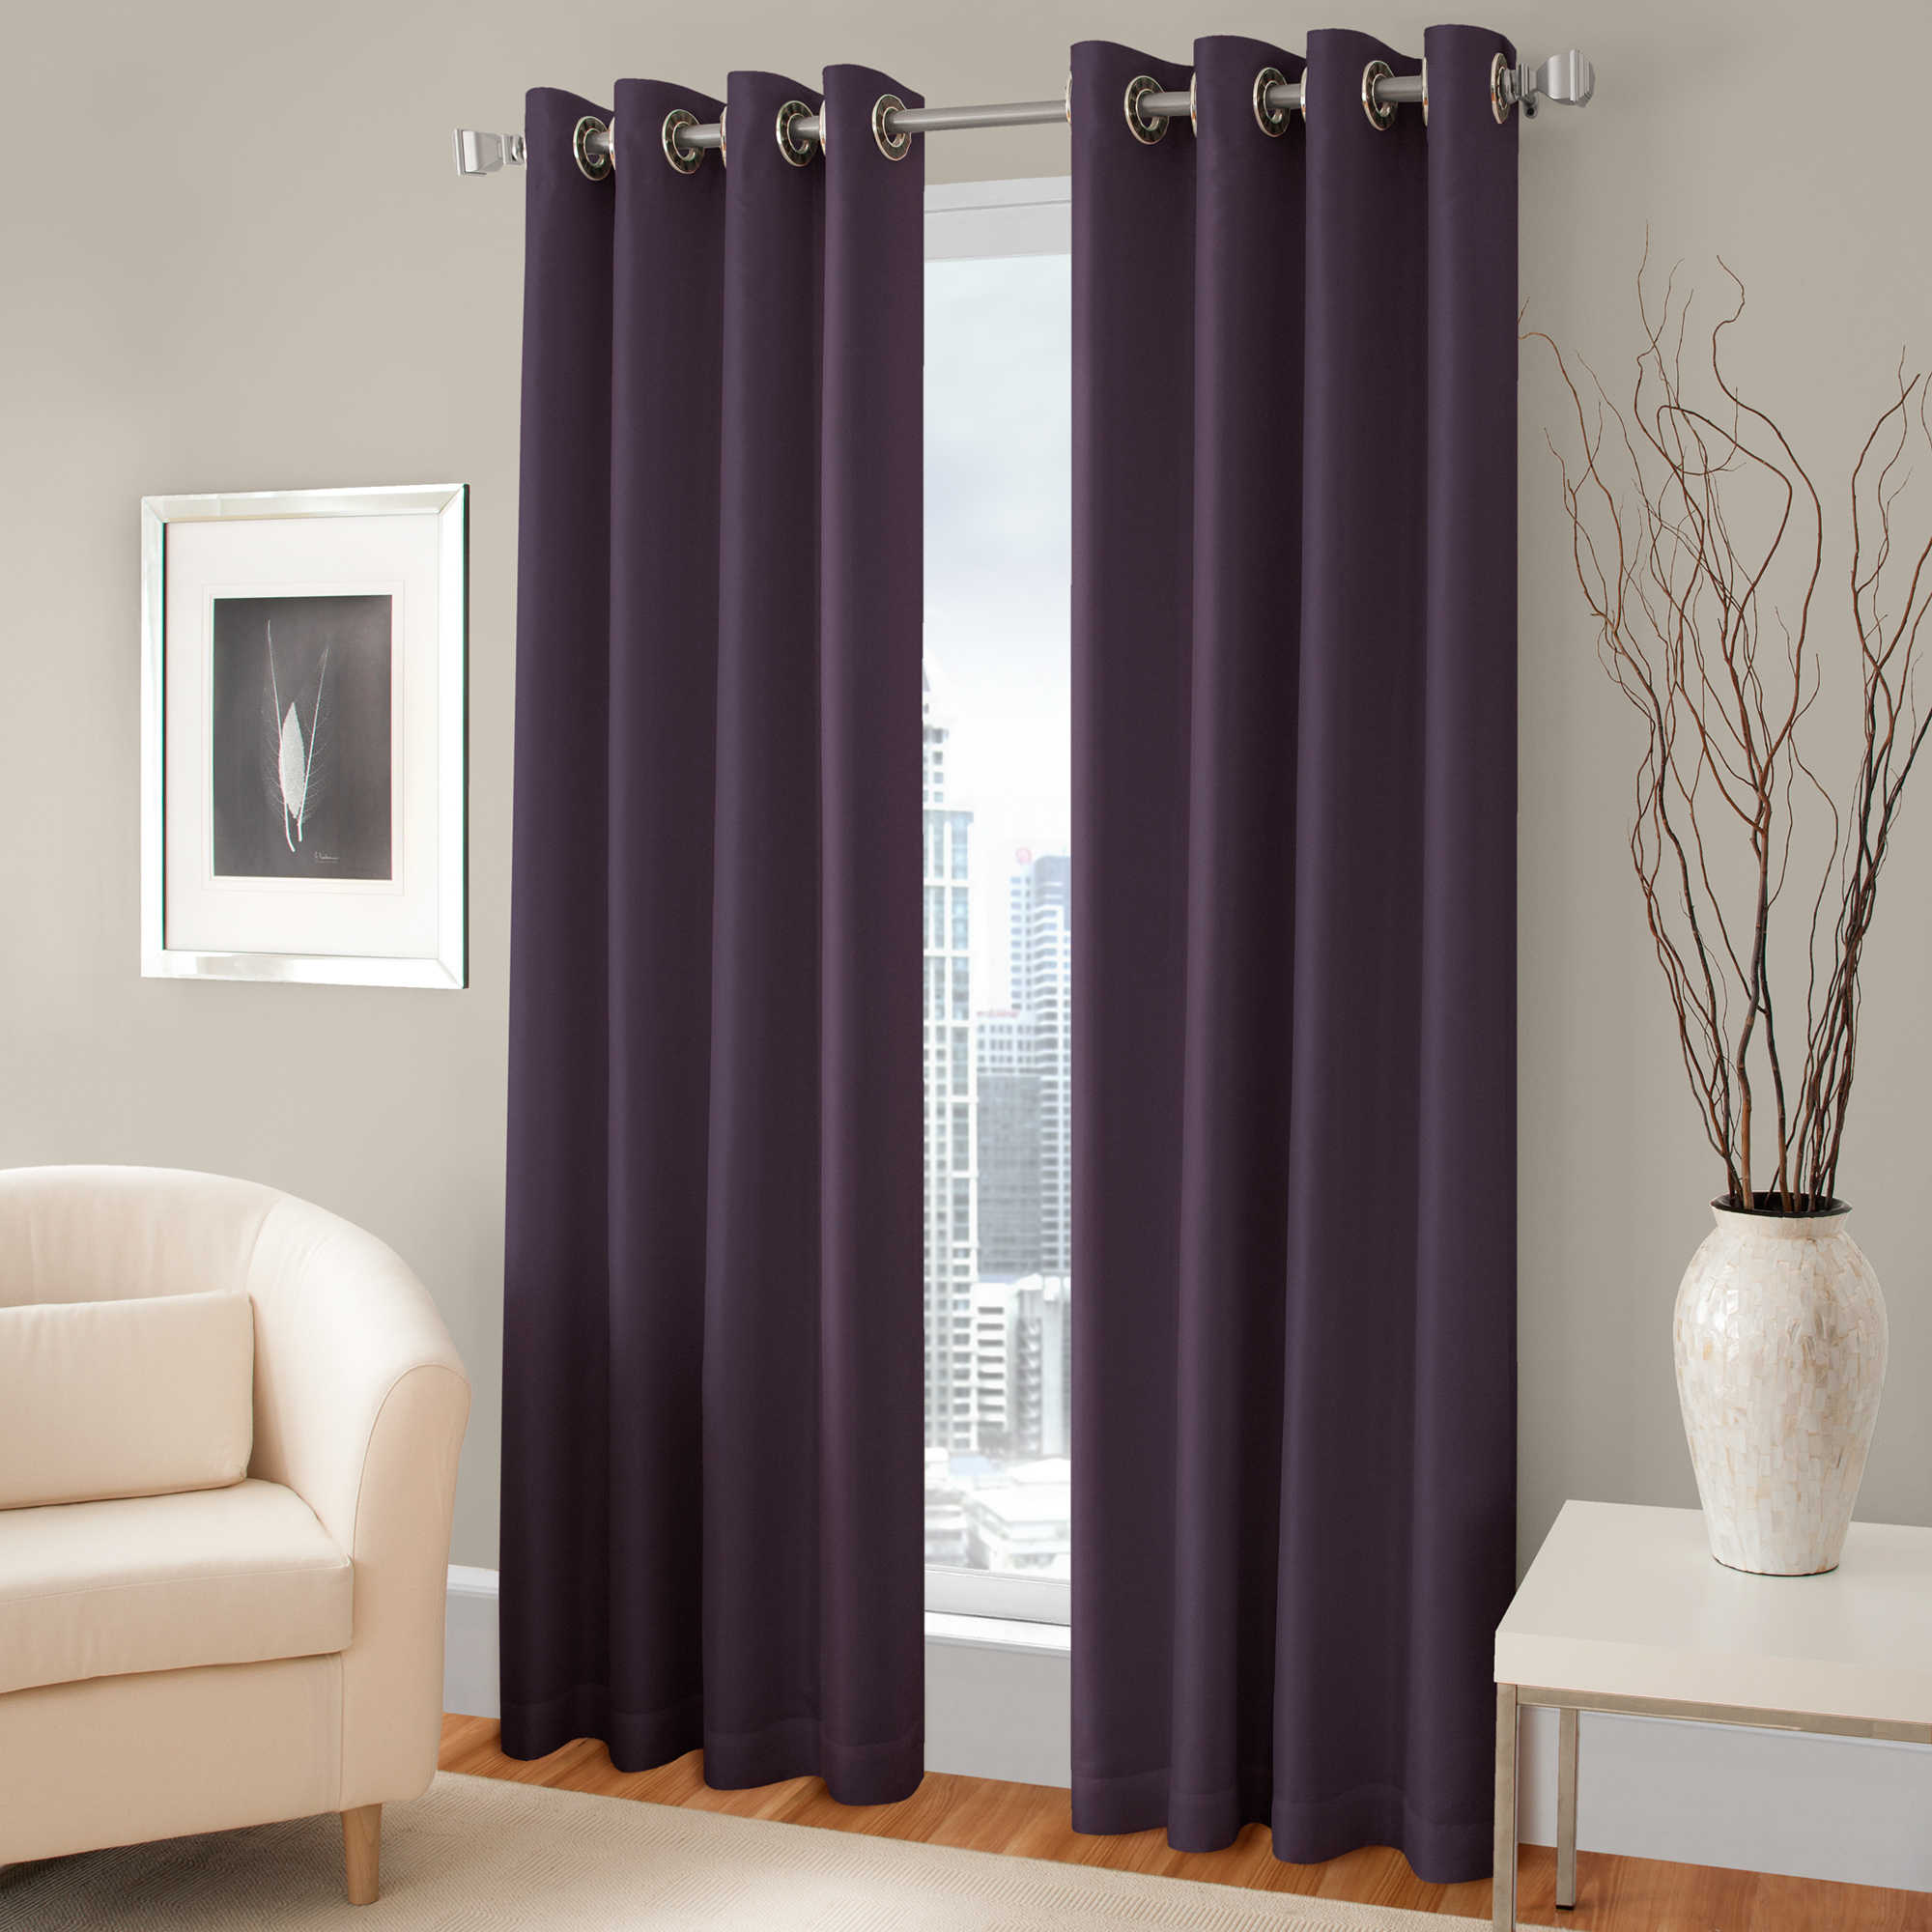 home of ideas bed bath ikea for drapes fresh curtains design bedroom beyond and images